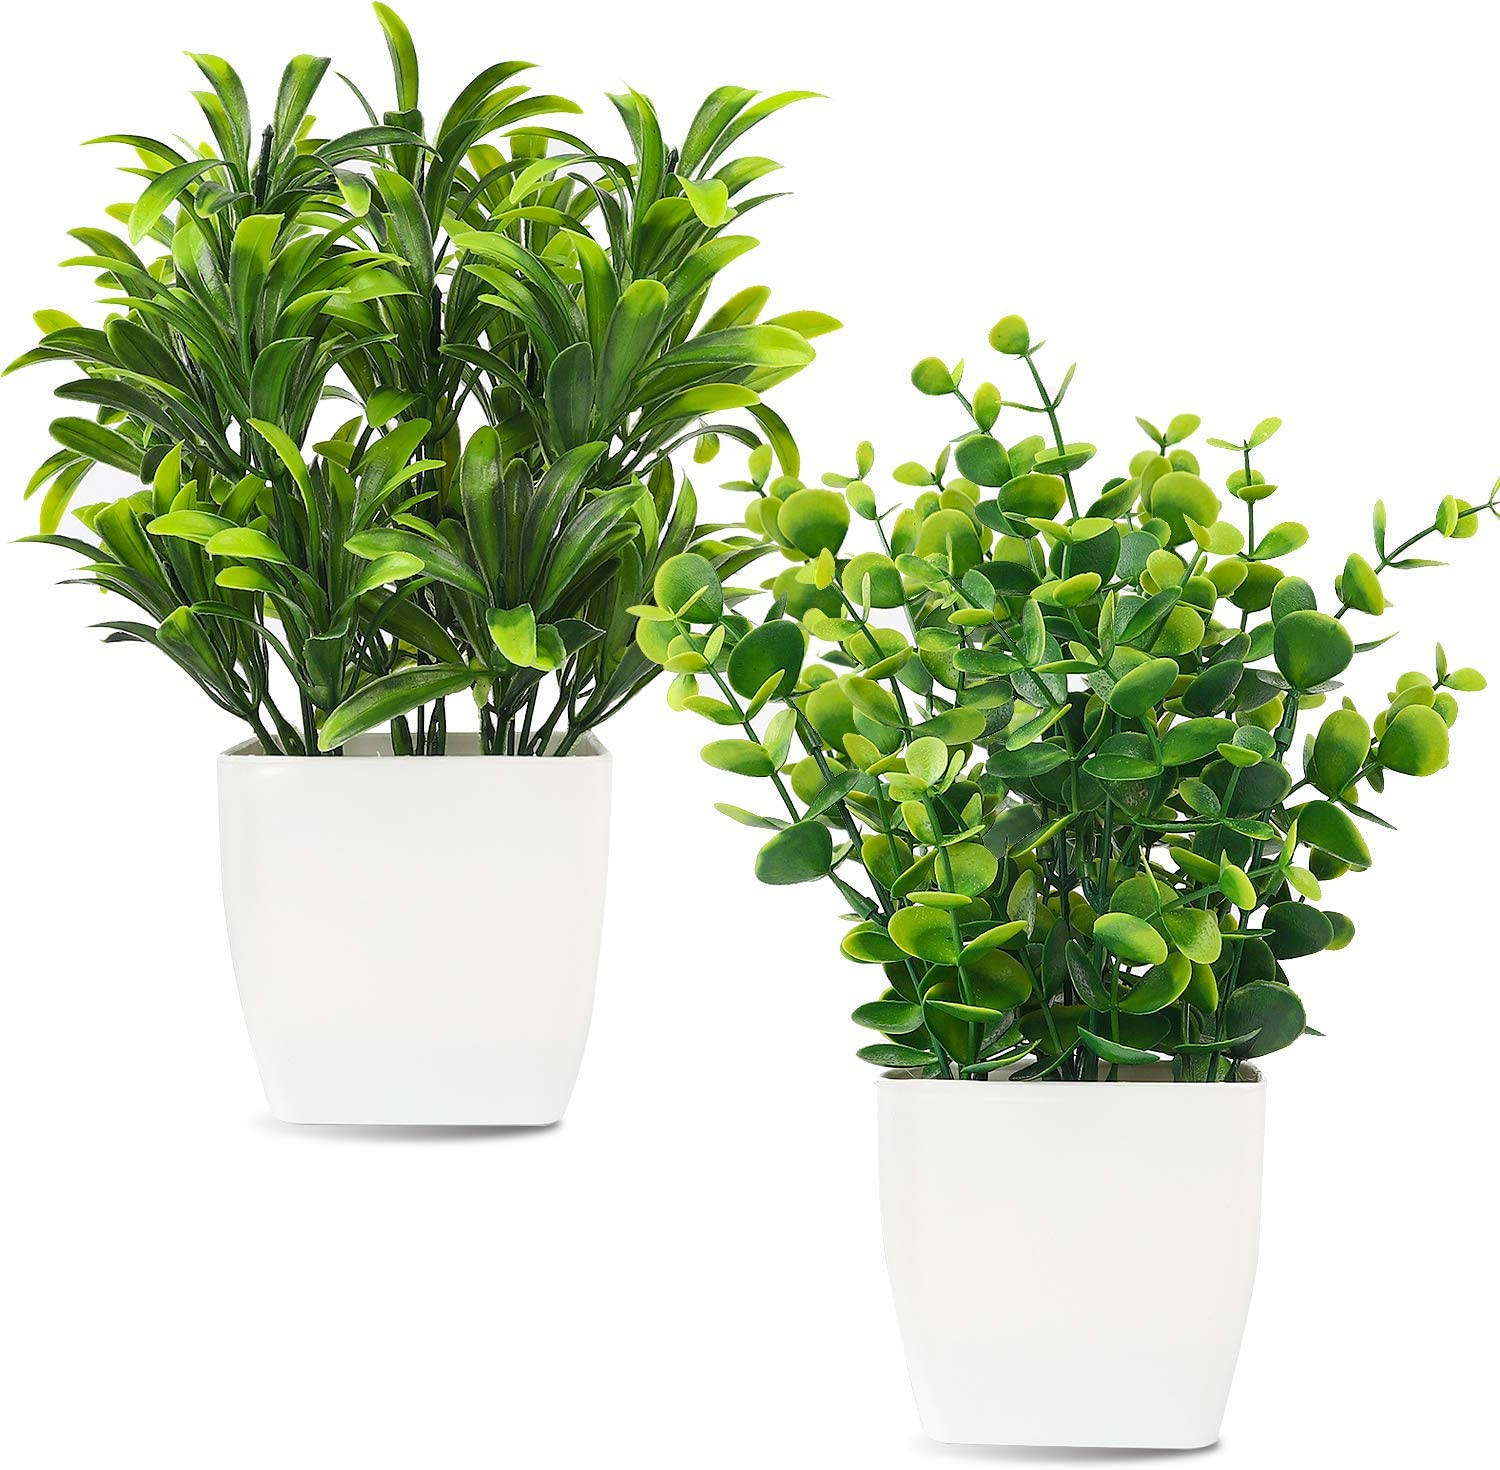 Whonline 2pcs Artificial Mini Potted Plants Fake Plastic Eucalyptus Leaves Plants for Home Office Desk Room Greenery Decoration